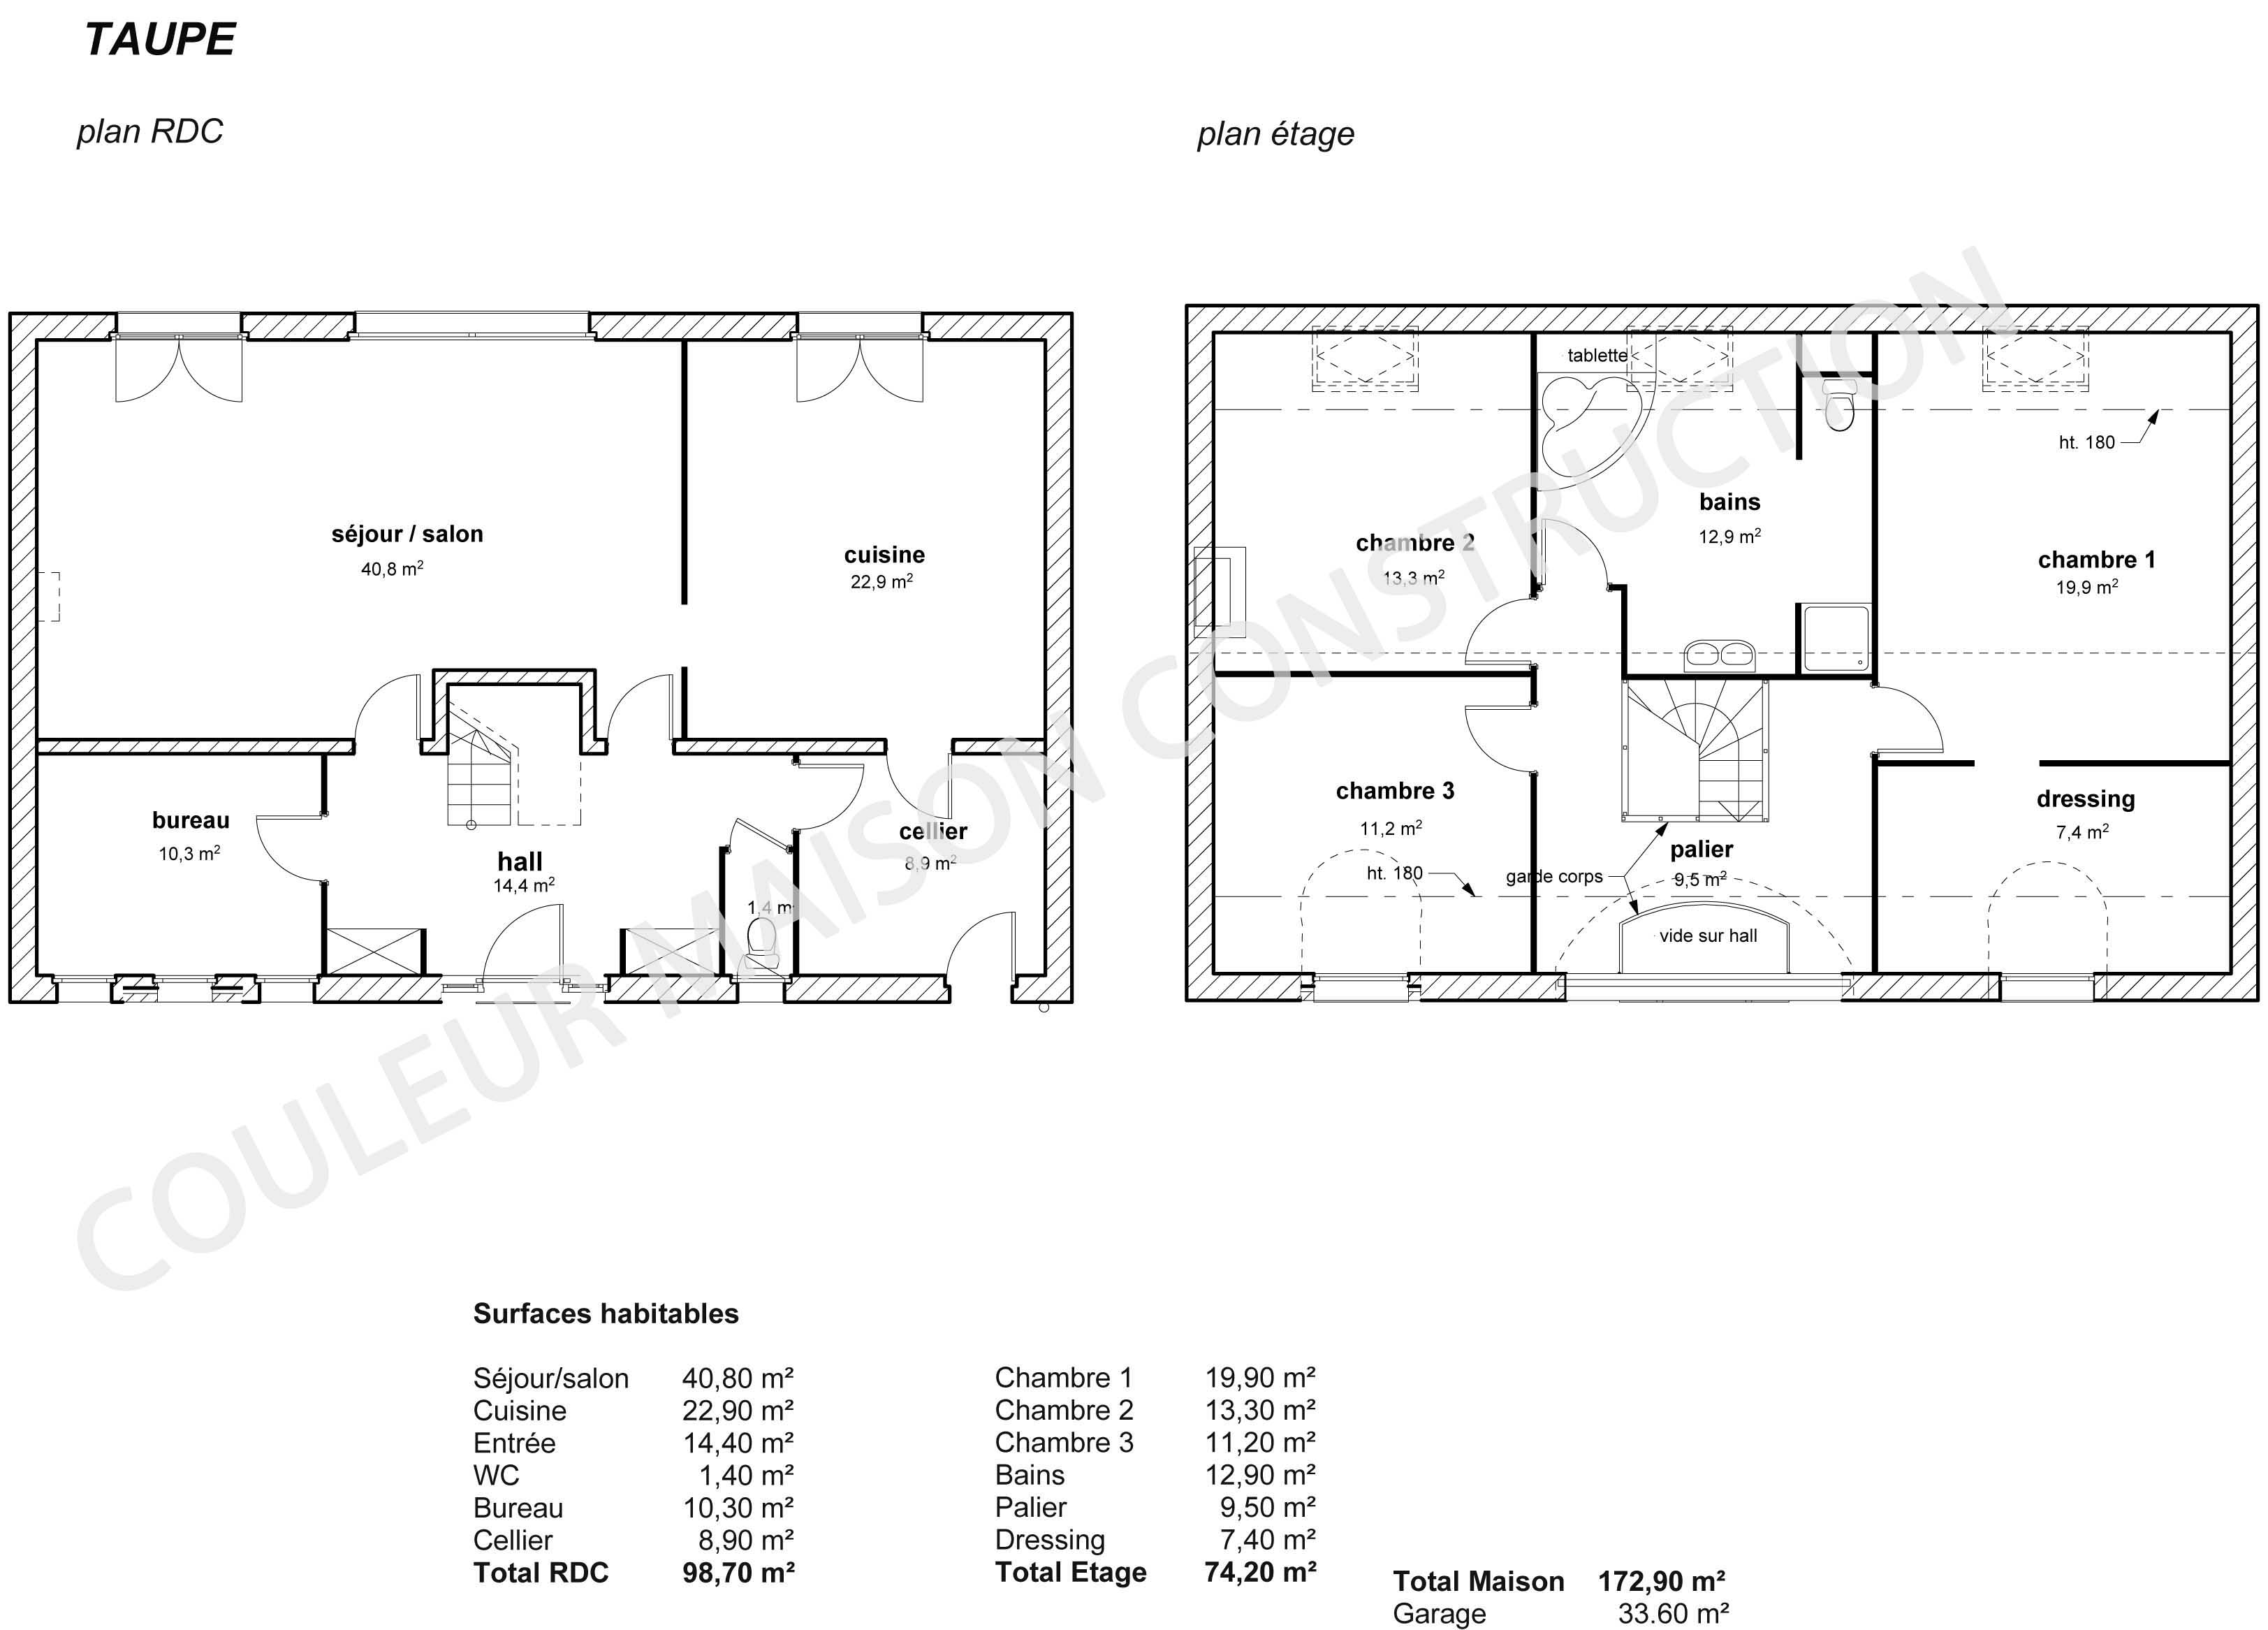 Best Beautiful Plan De Maison Exemple De Plan De Maison En D With Plan  Maison Chambres Tage With Plan Maison 4 Chambres